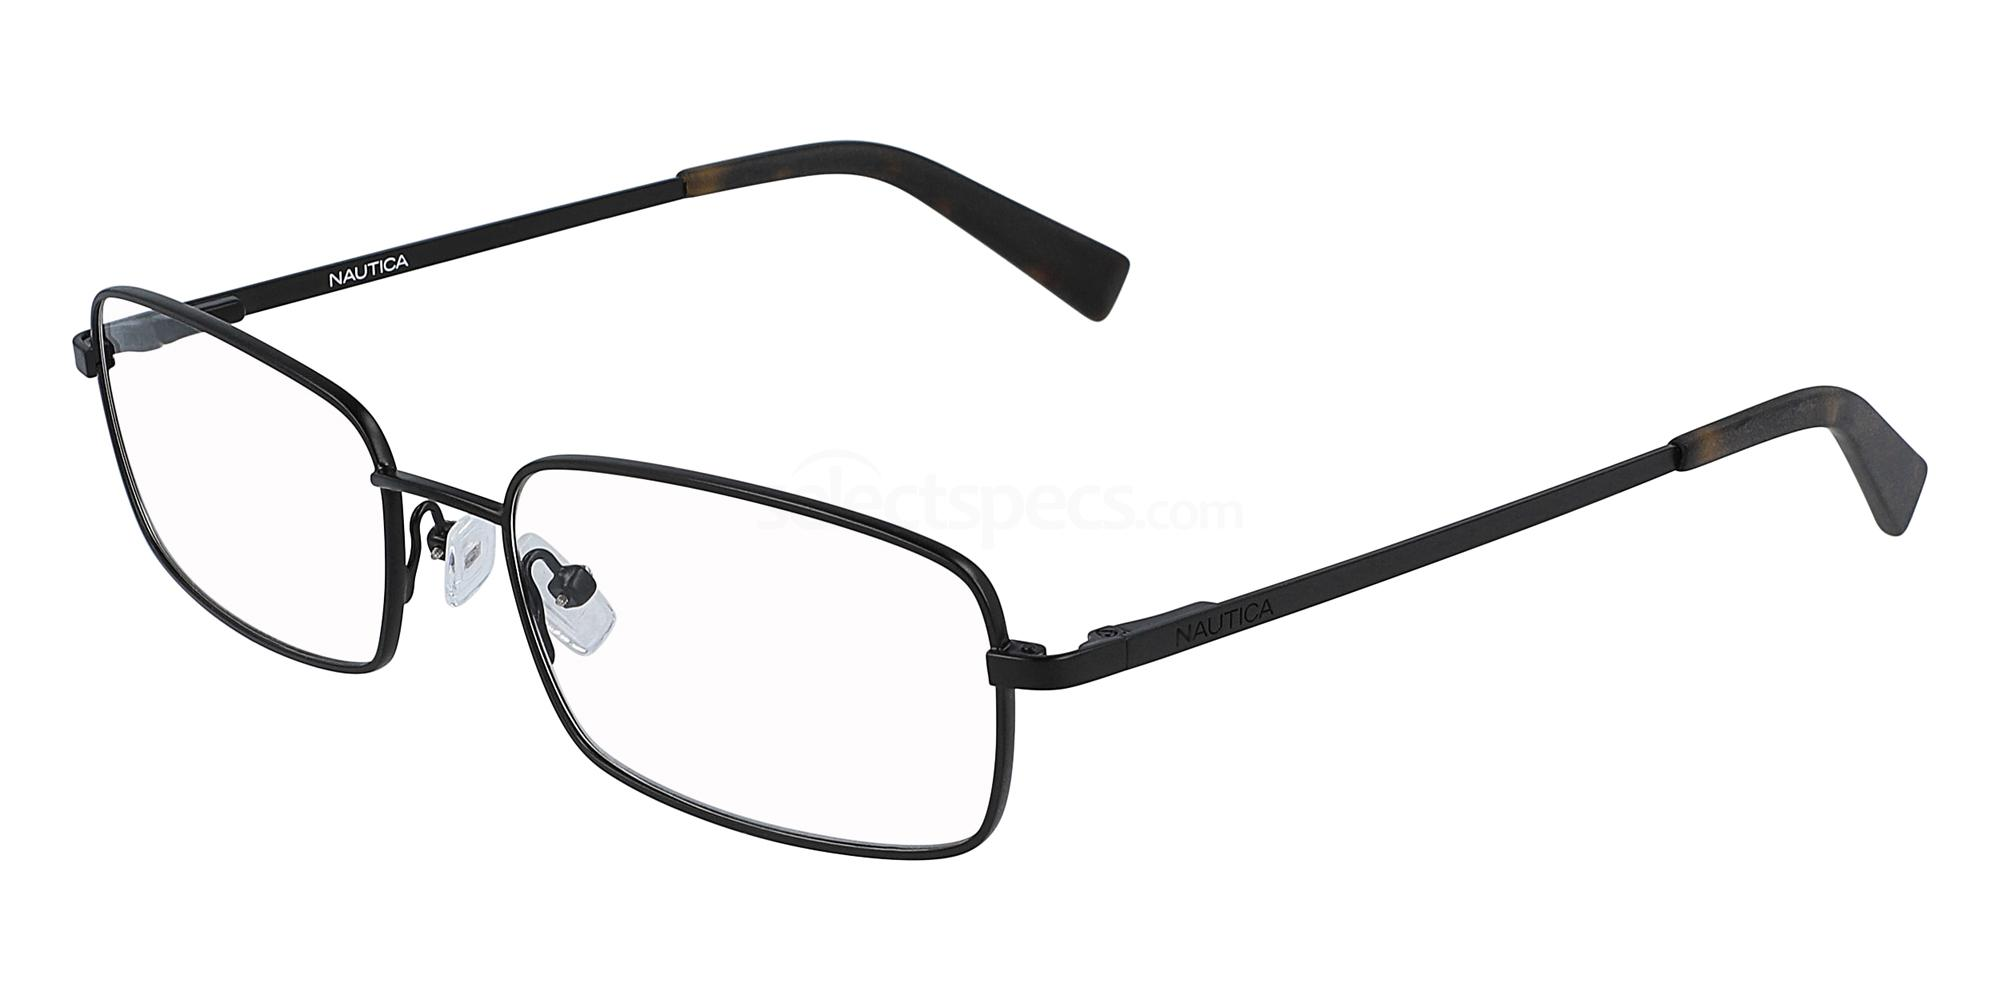 005 N7302 Glasses, Nautica